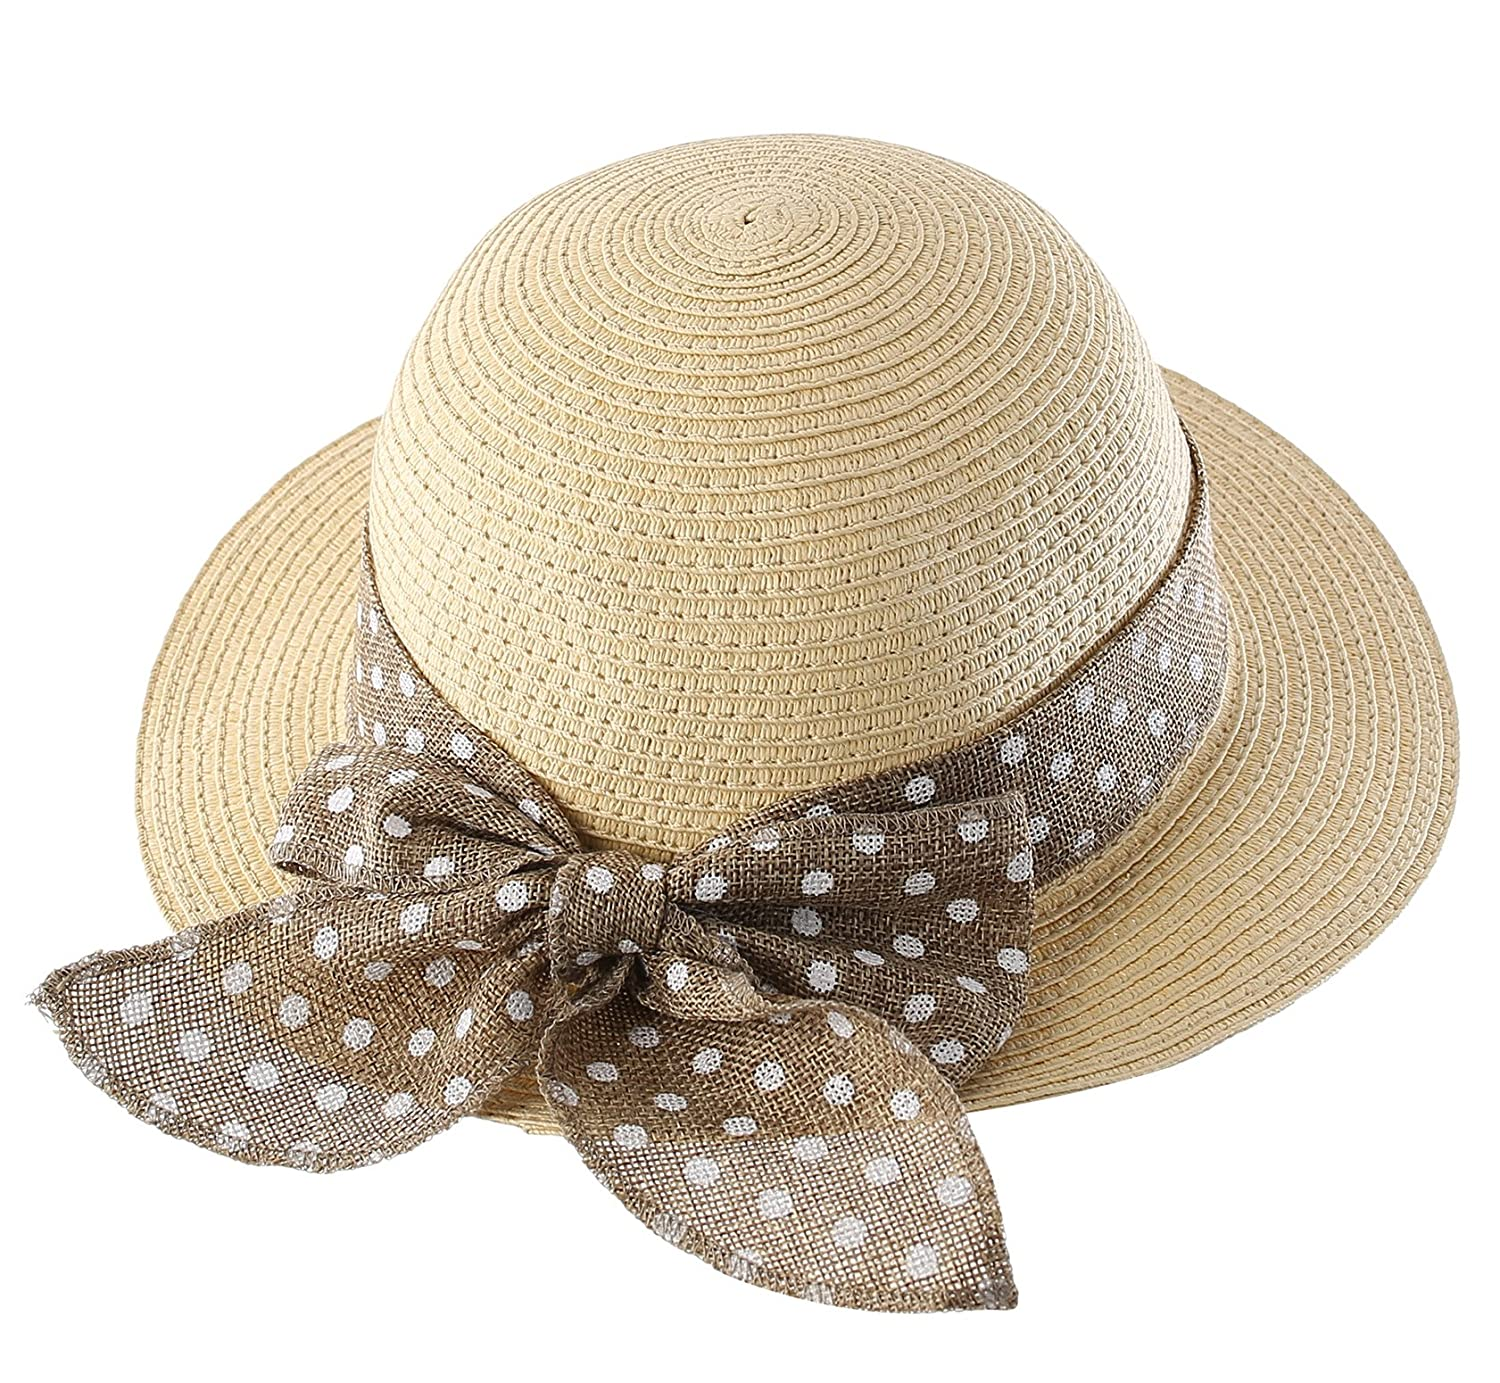 4ee93525275 Amazon.com  Connectyle Kids Summer Straw Hat Bowknot Beach Sun Protection  Hats for Girls  Clothing